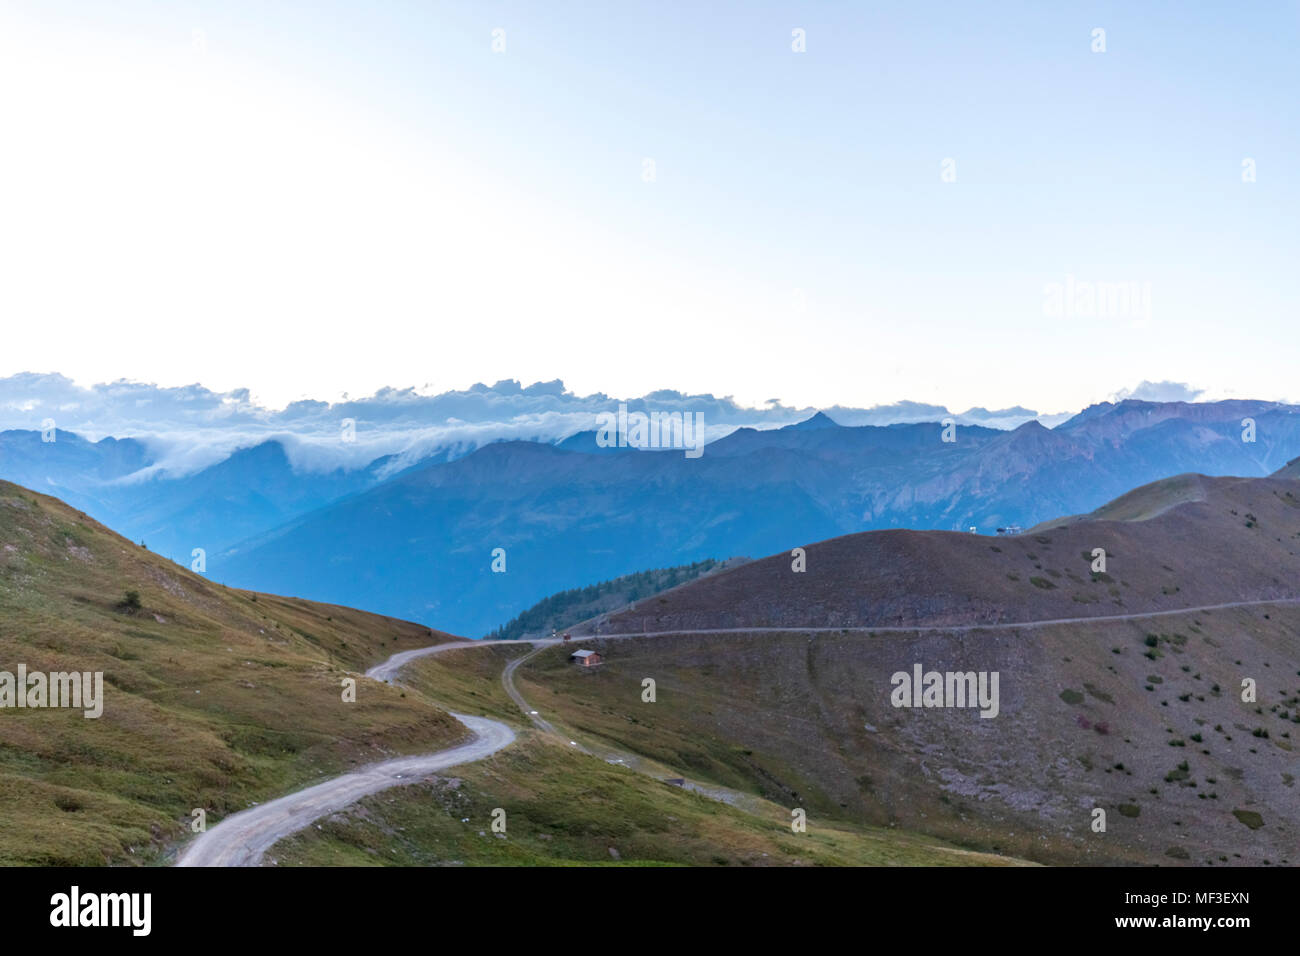 Italy, Piemont, West Alps, View from Colle Basset, Colle dell'Assietta, Cottian Alps Stock Photo